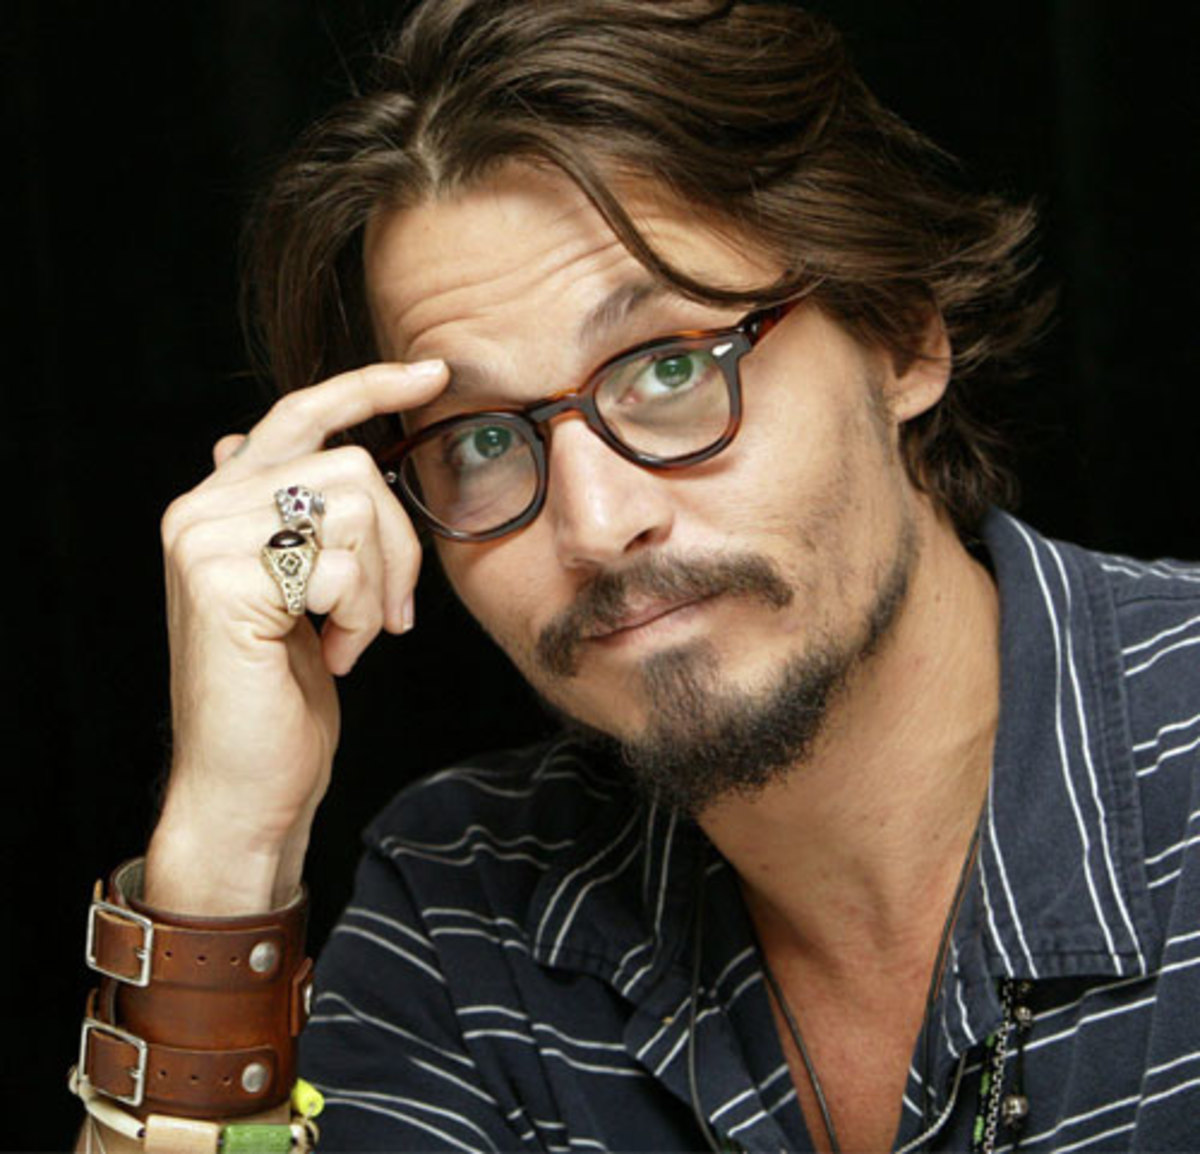 Johnny Depp Makes Glasses Look Amazing